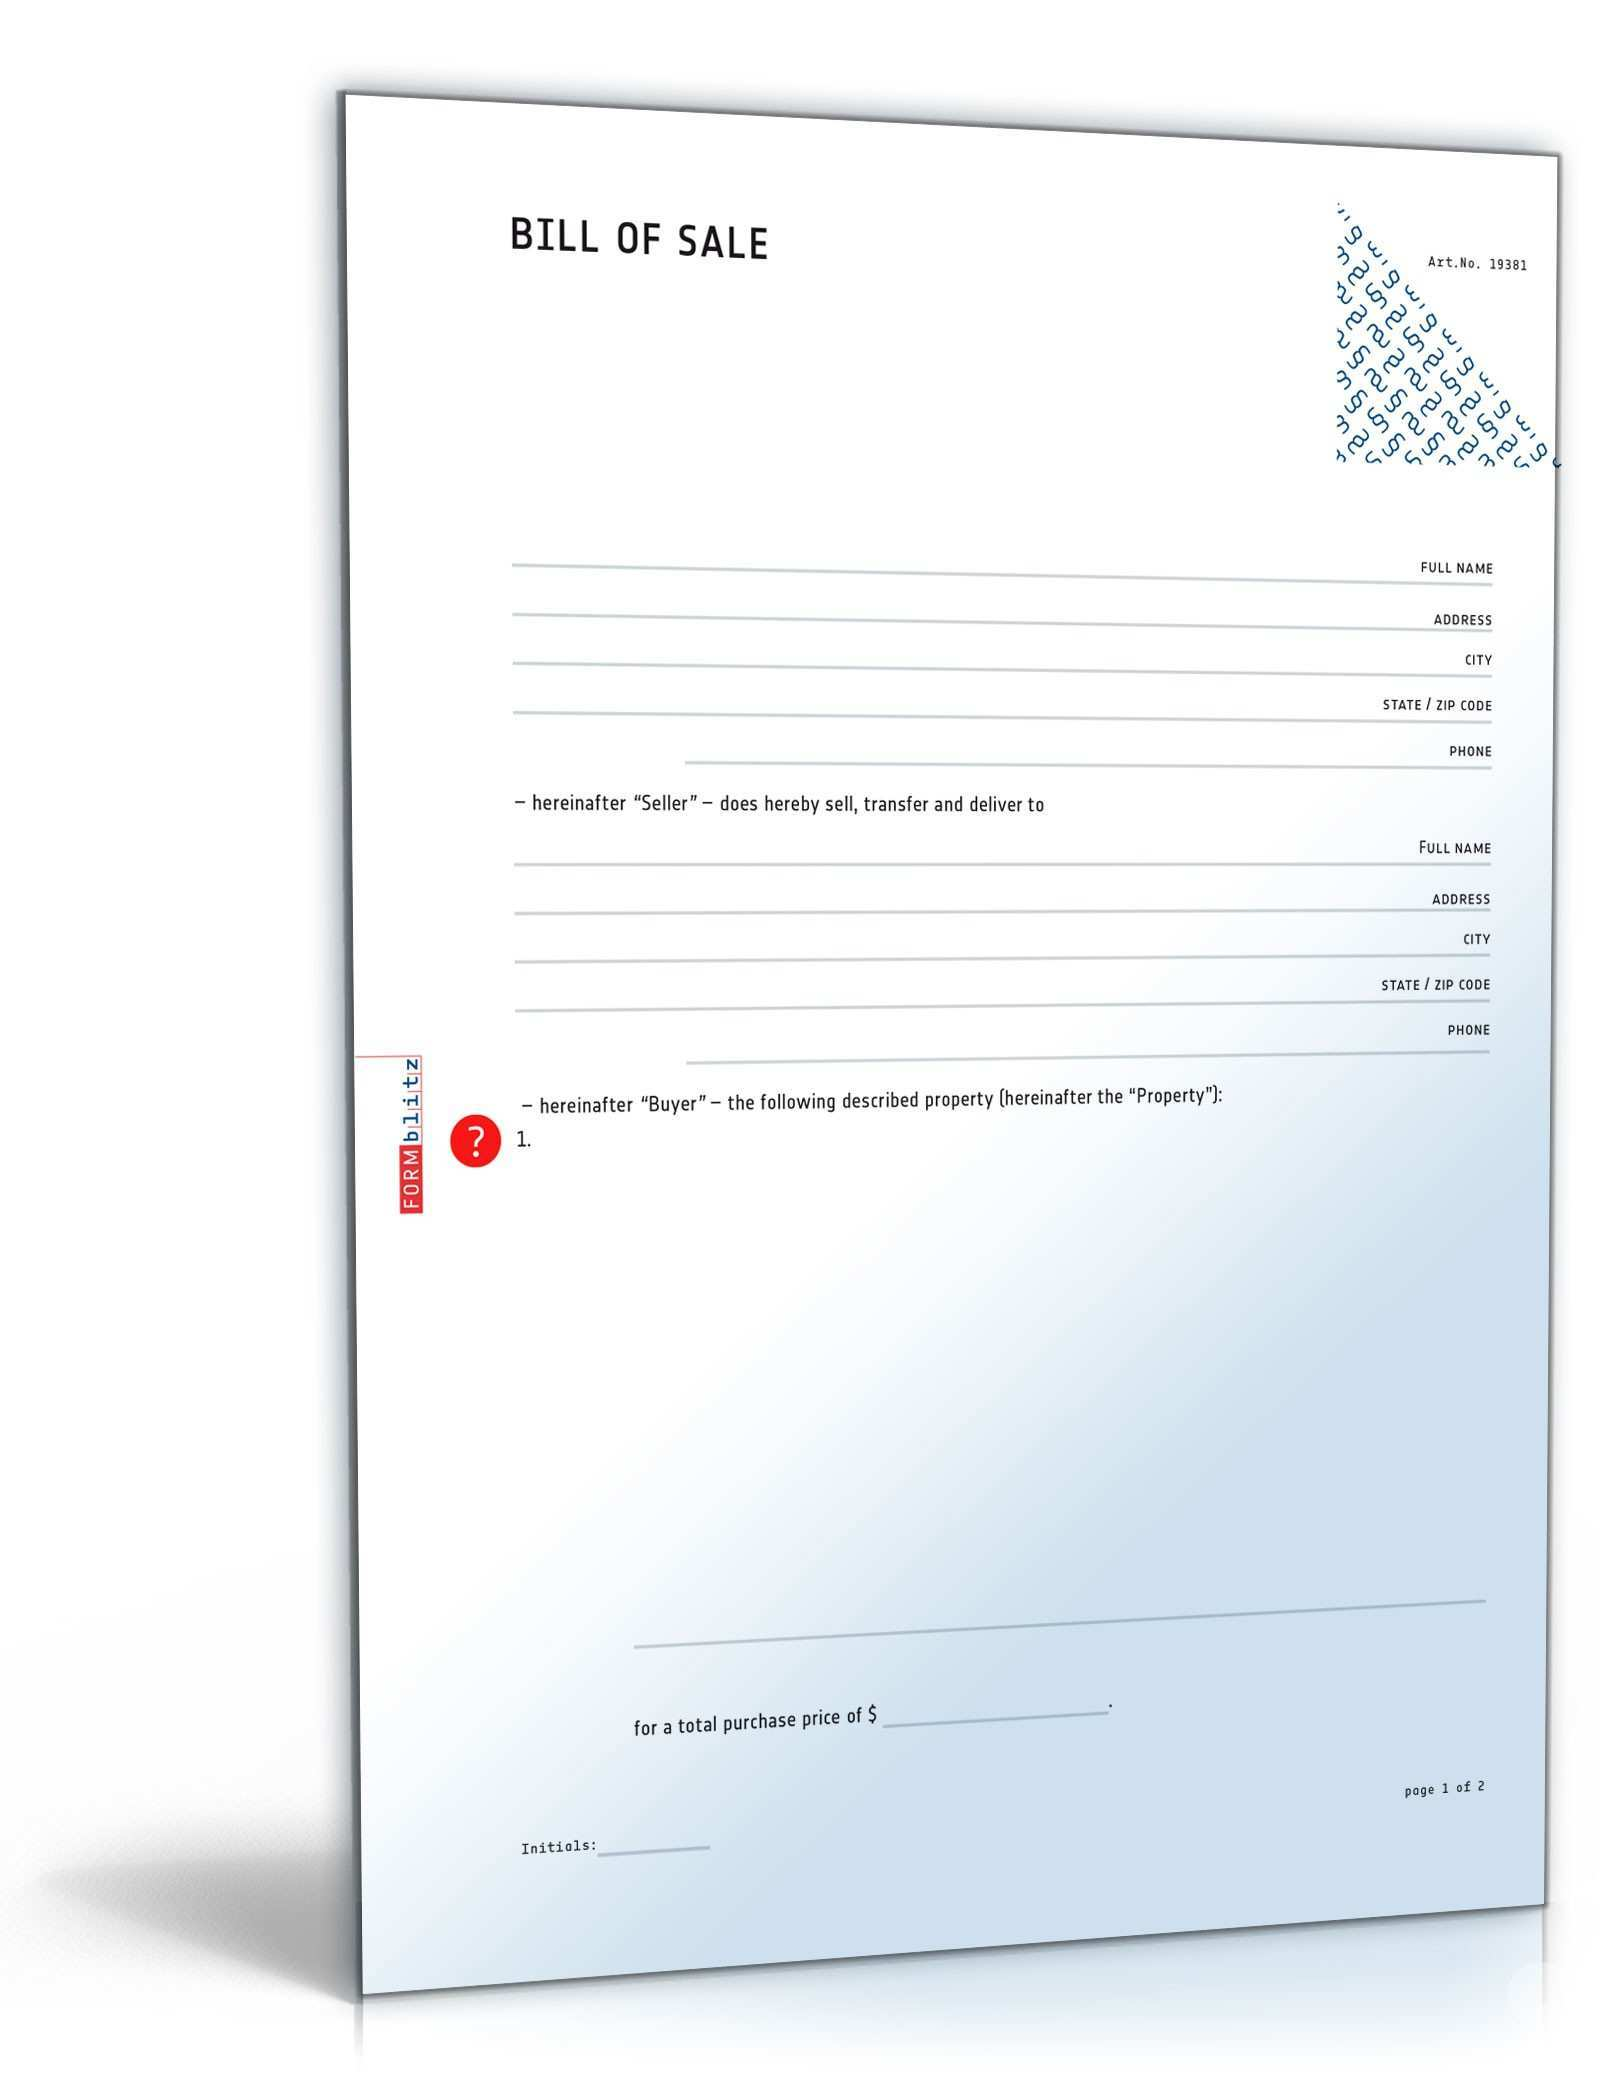 General Bill Of Sale As Is Template To Download